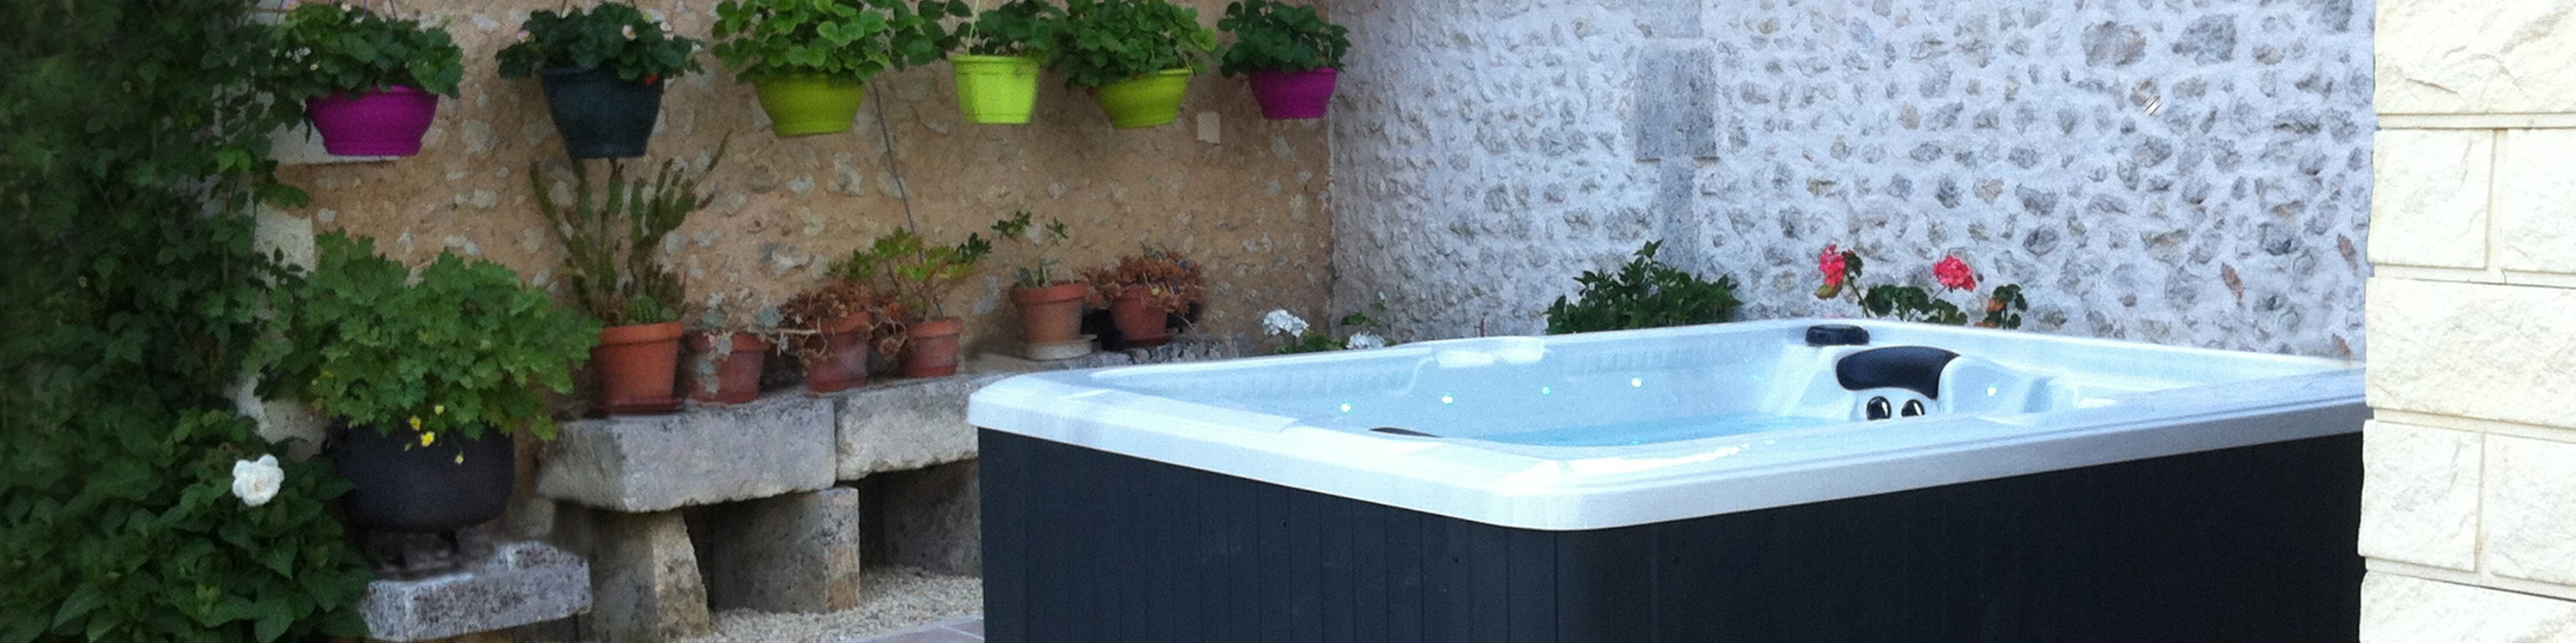 EVERBLUE_Spas_Installation spa